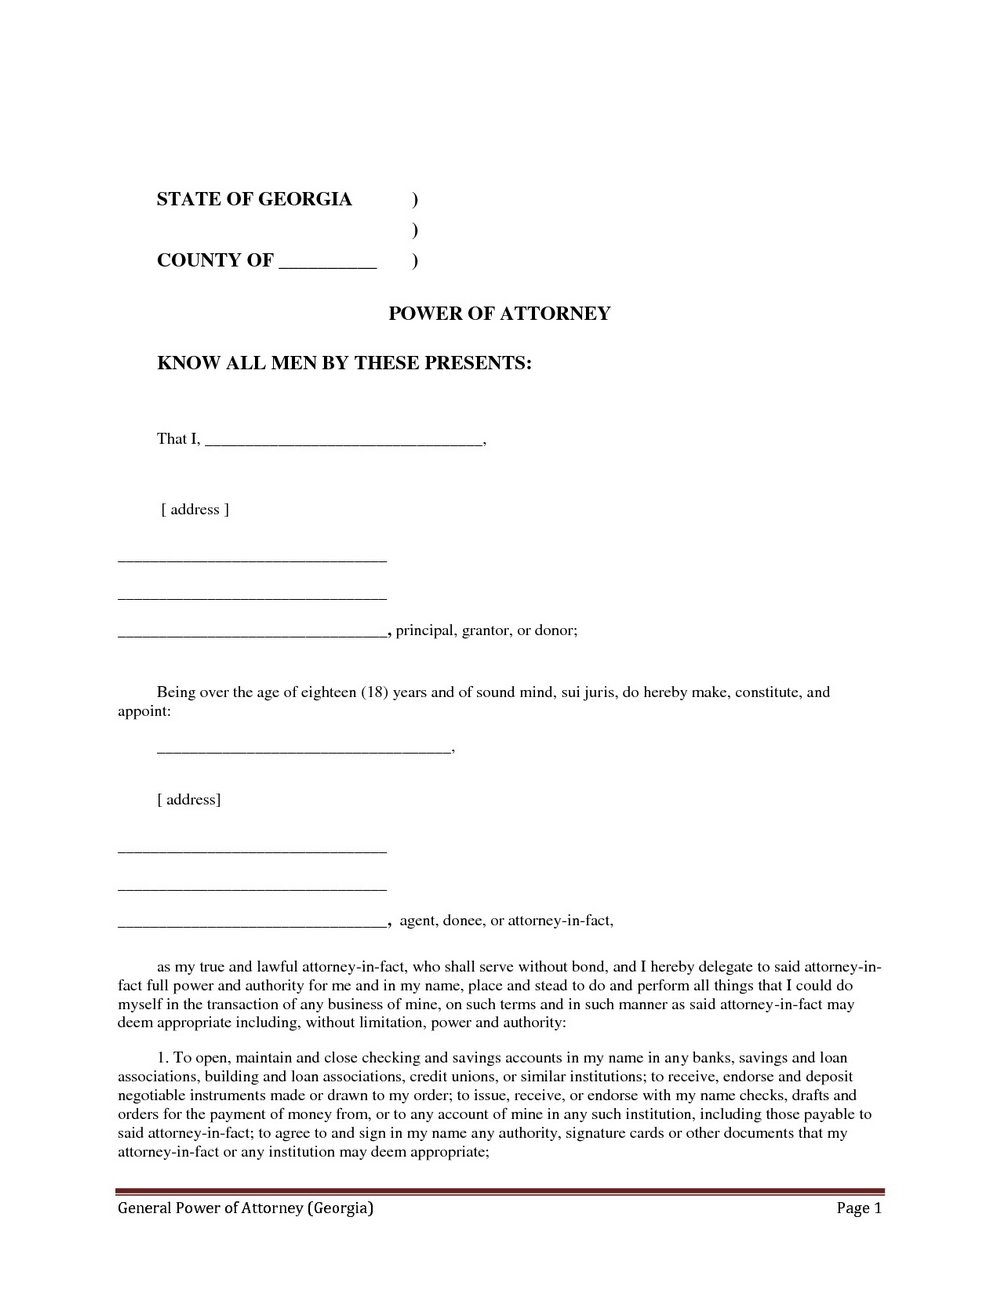 Power Of Attorney Template Simple